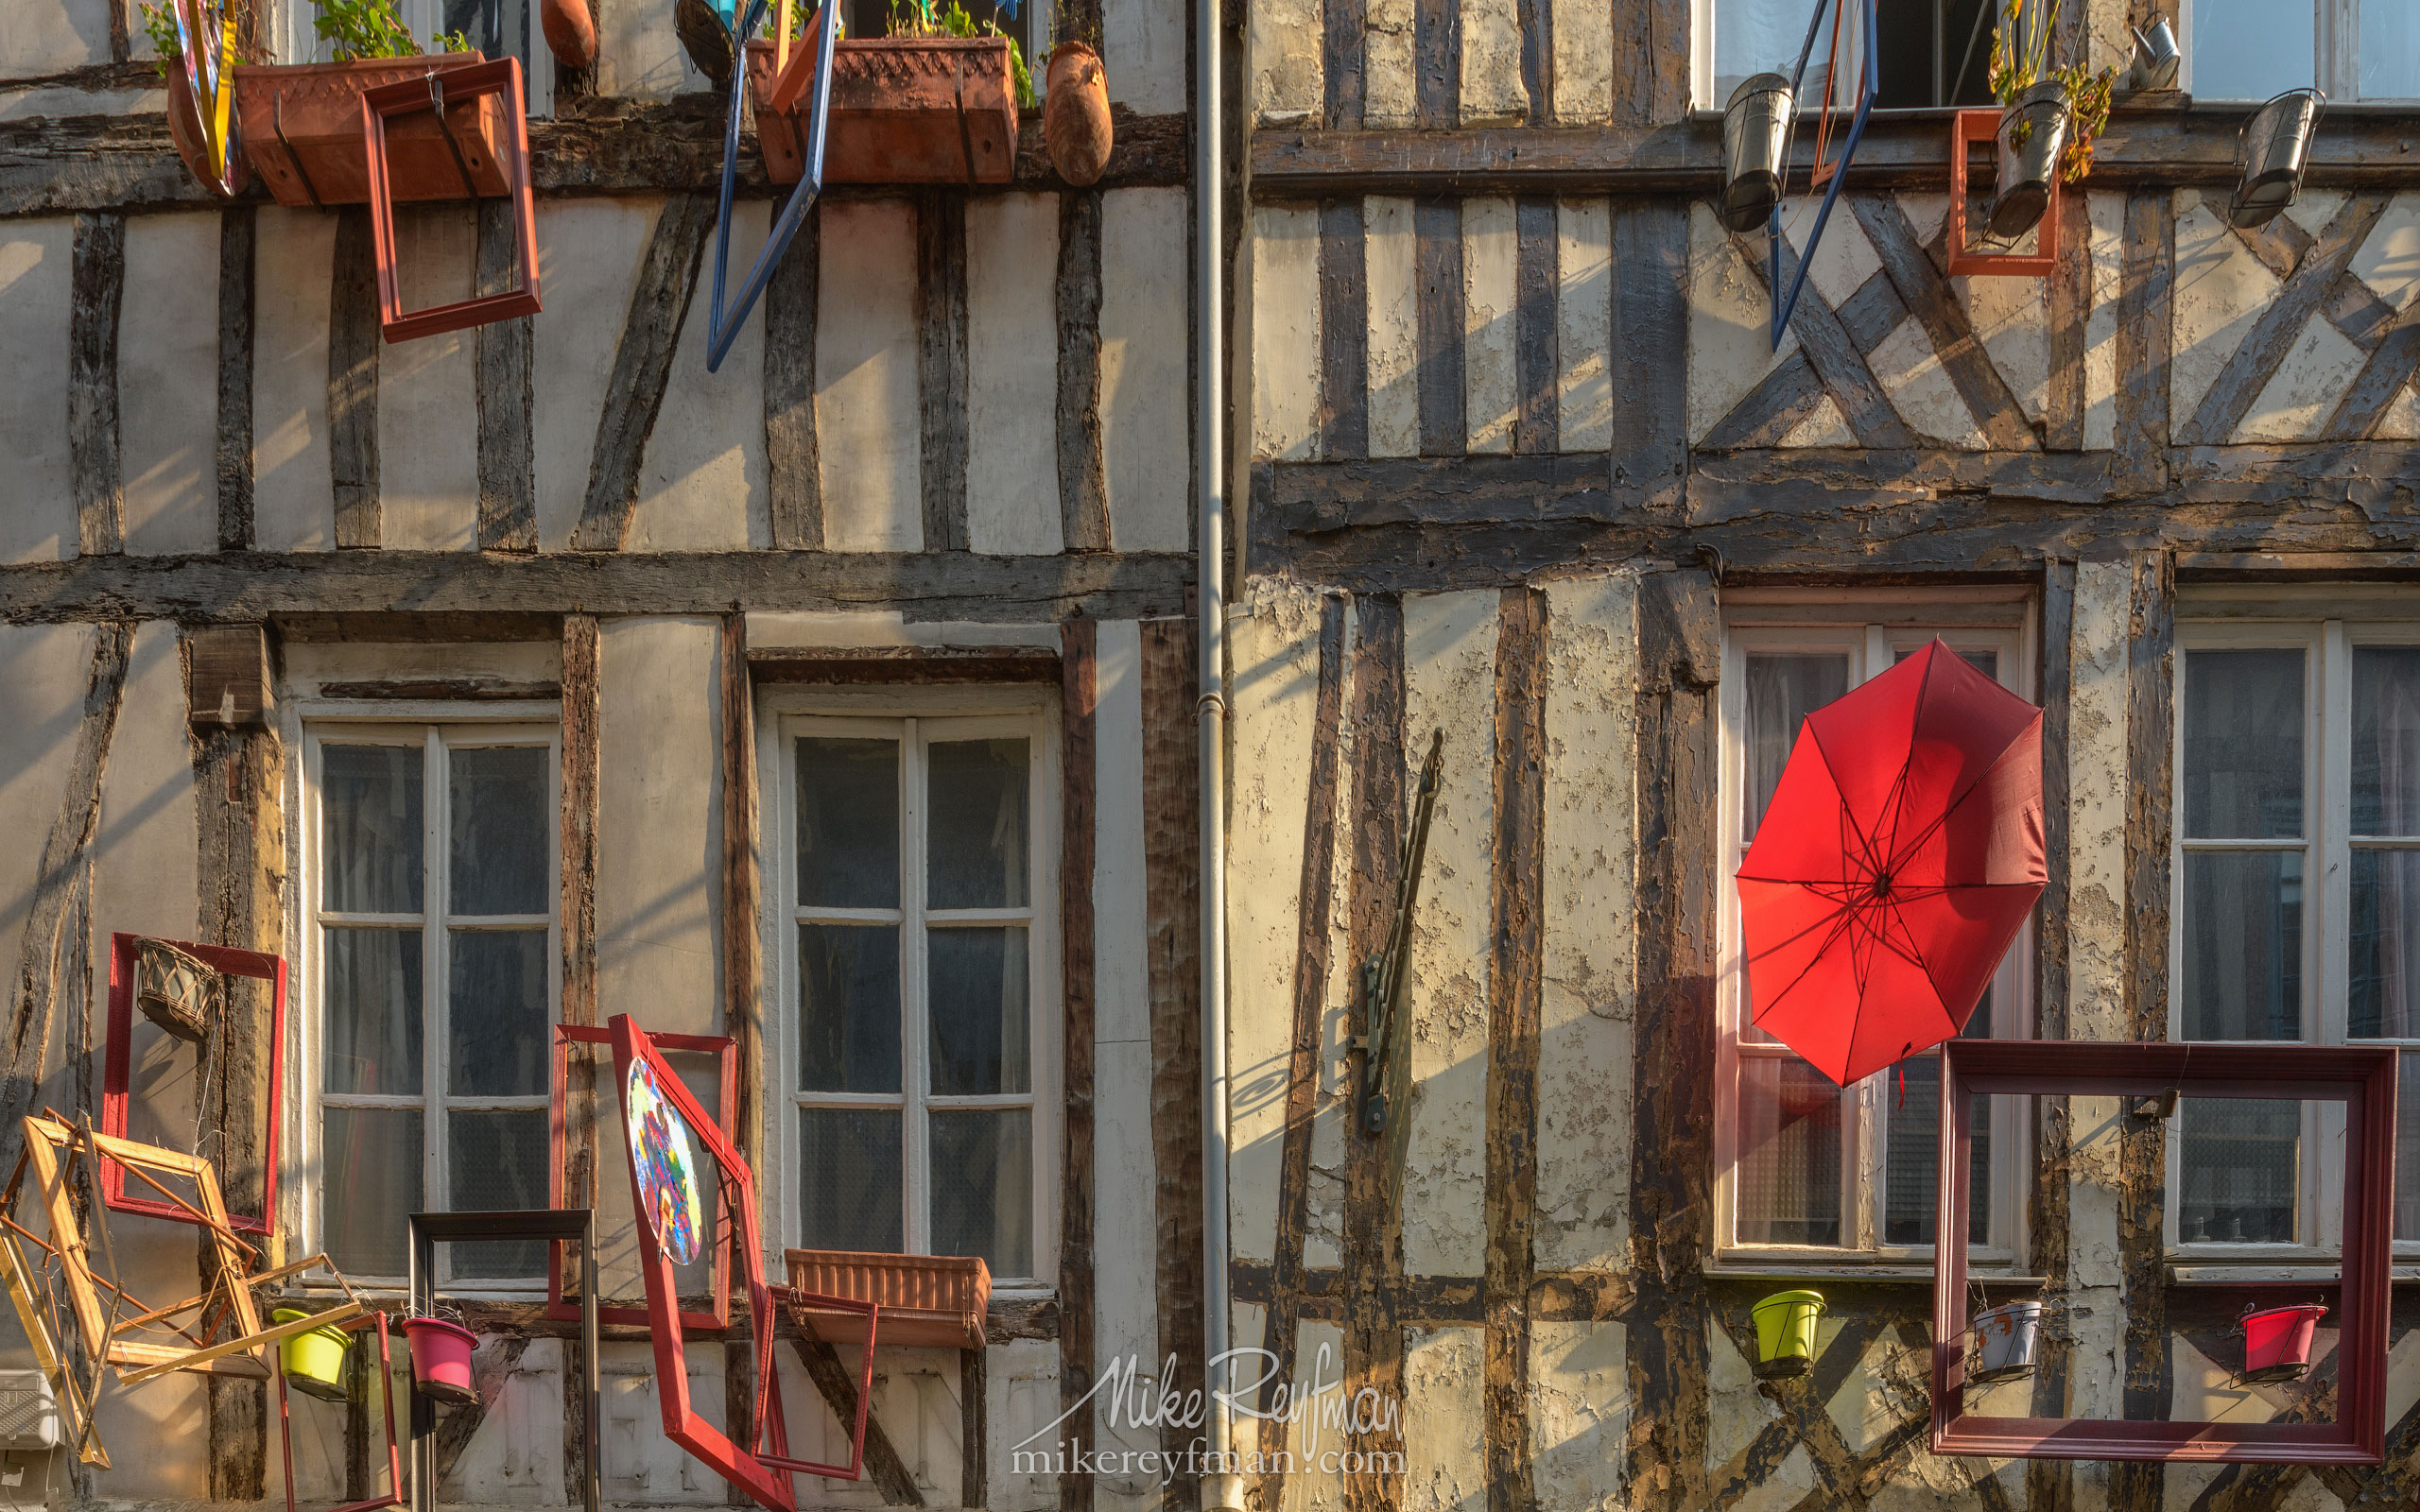 Rouen, Normandy, France FR1-MR50A0483 - Symmetries and Beyond. Random photos. France. - Mike Reyfman Photography